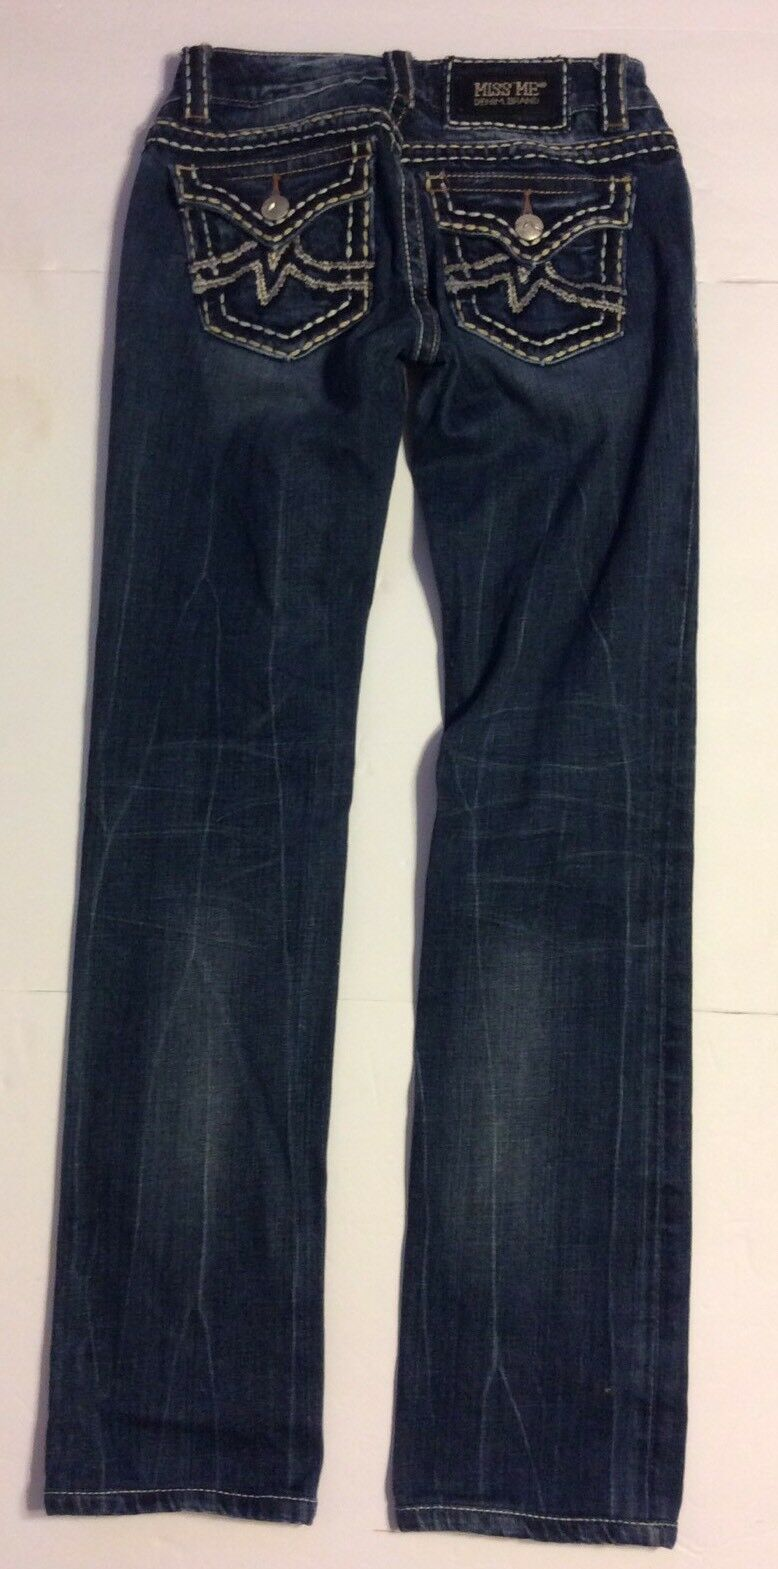 MISS ME WOMEN'S STRAIGHT DARK WASH DISTRESSED JEANS 27 x 32 aa-4